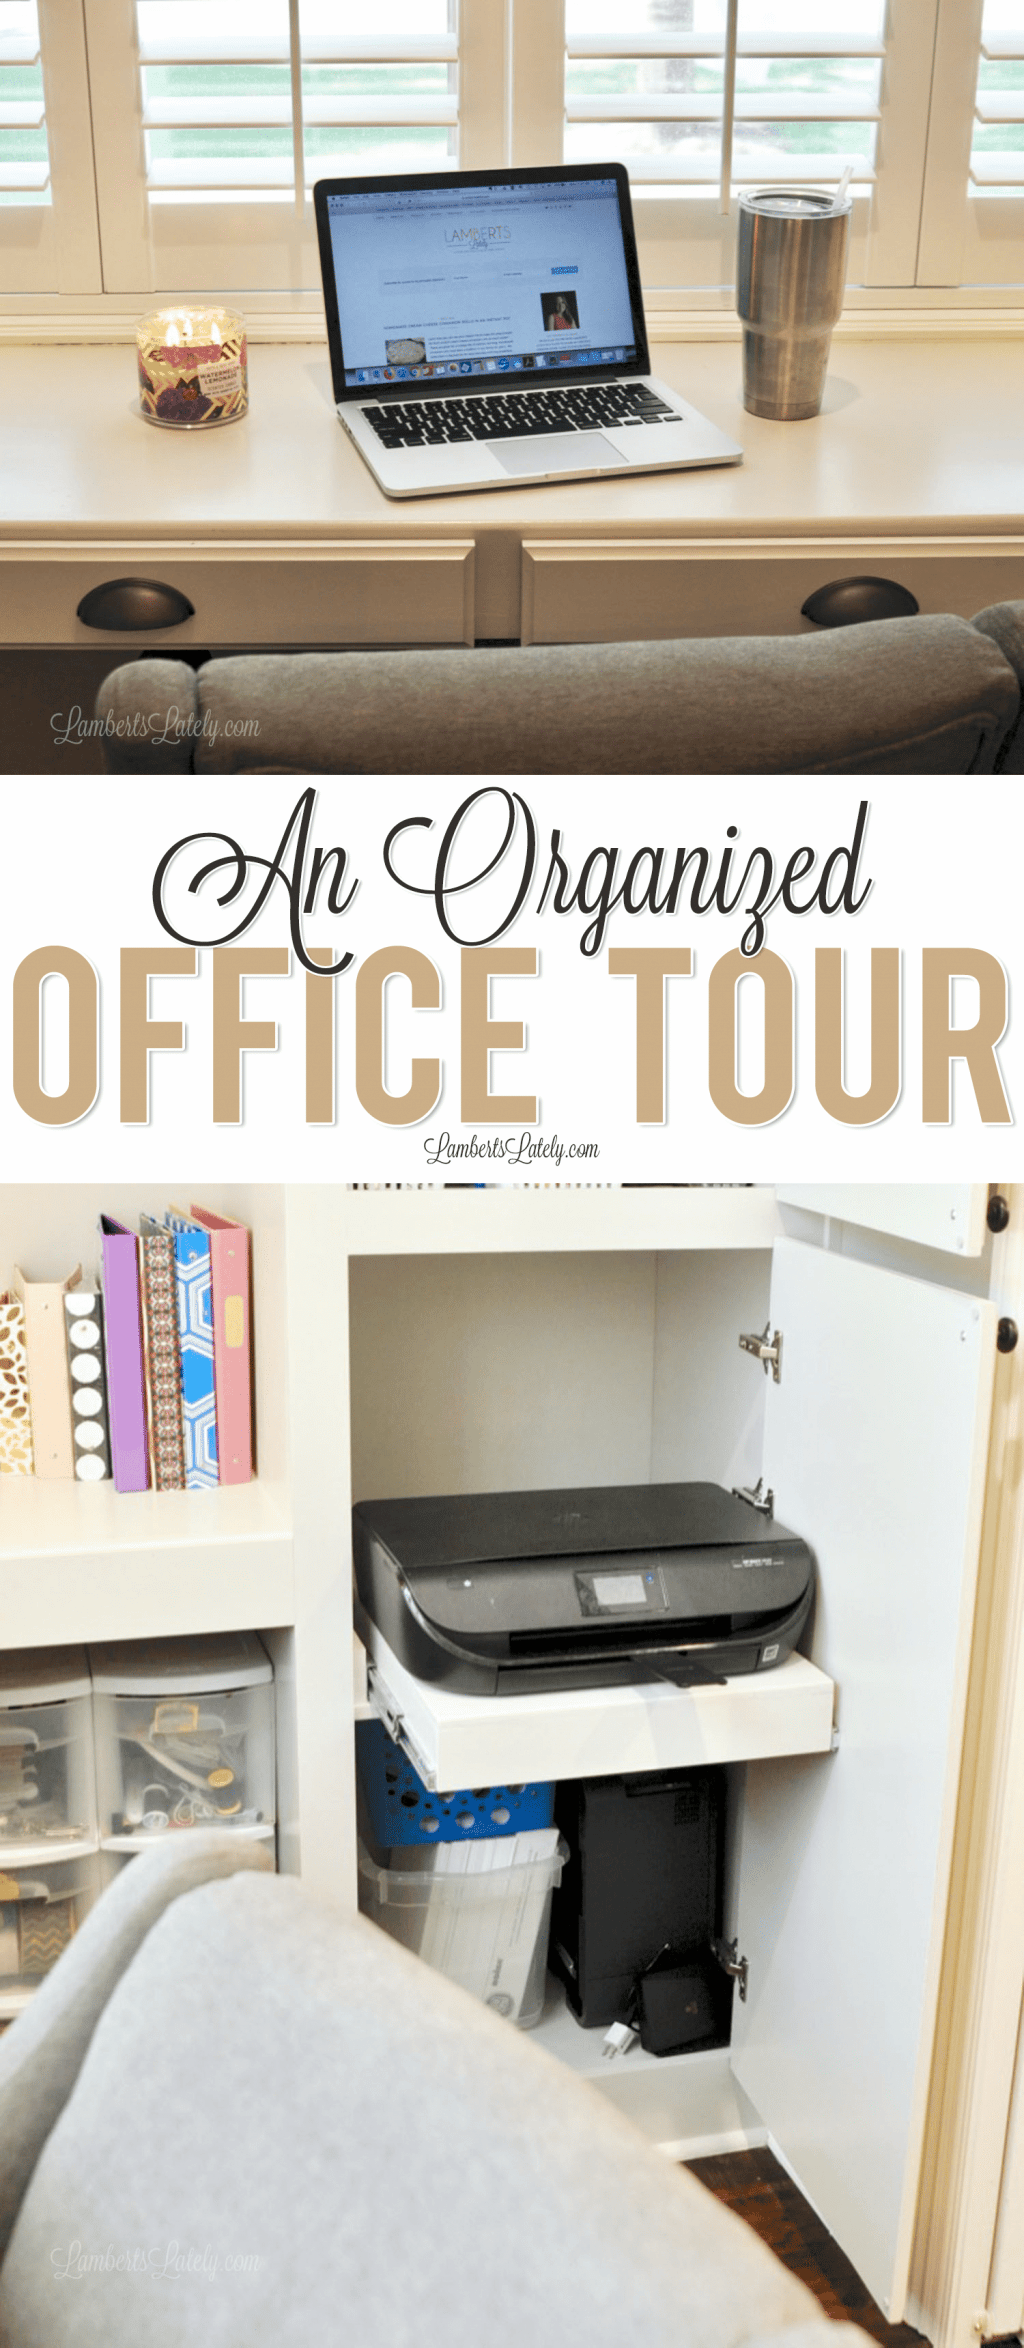 Take a tour of our organized home office space, complete with tips on storing supplies, eliminating clutter, and decorating with inexpensive/functional supplies!